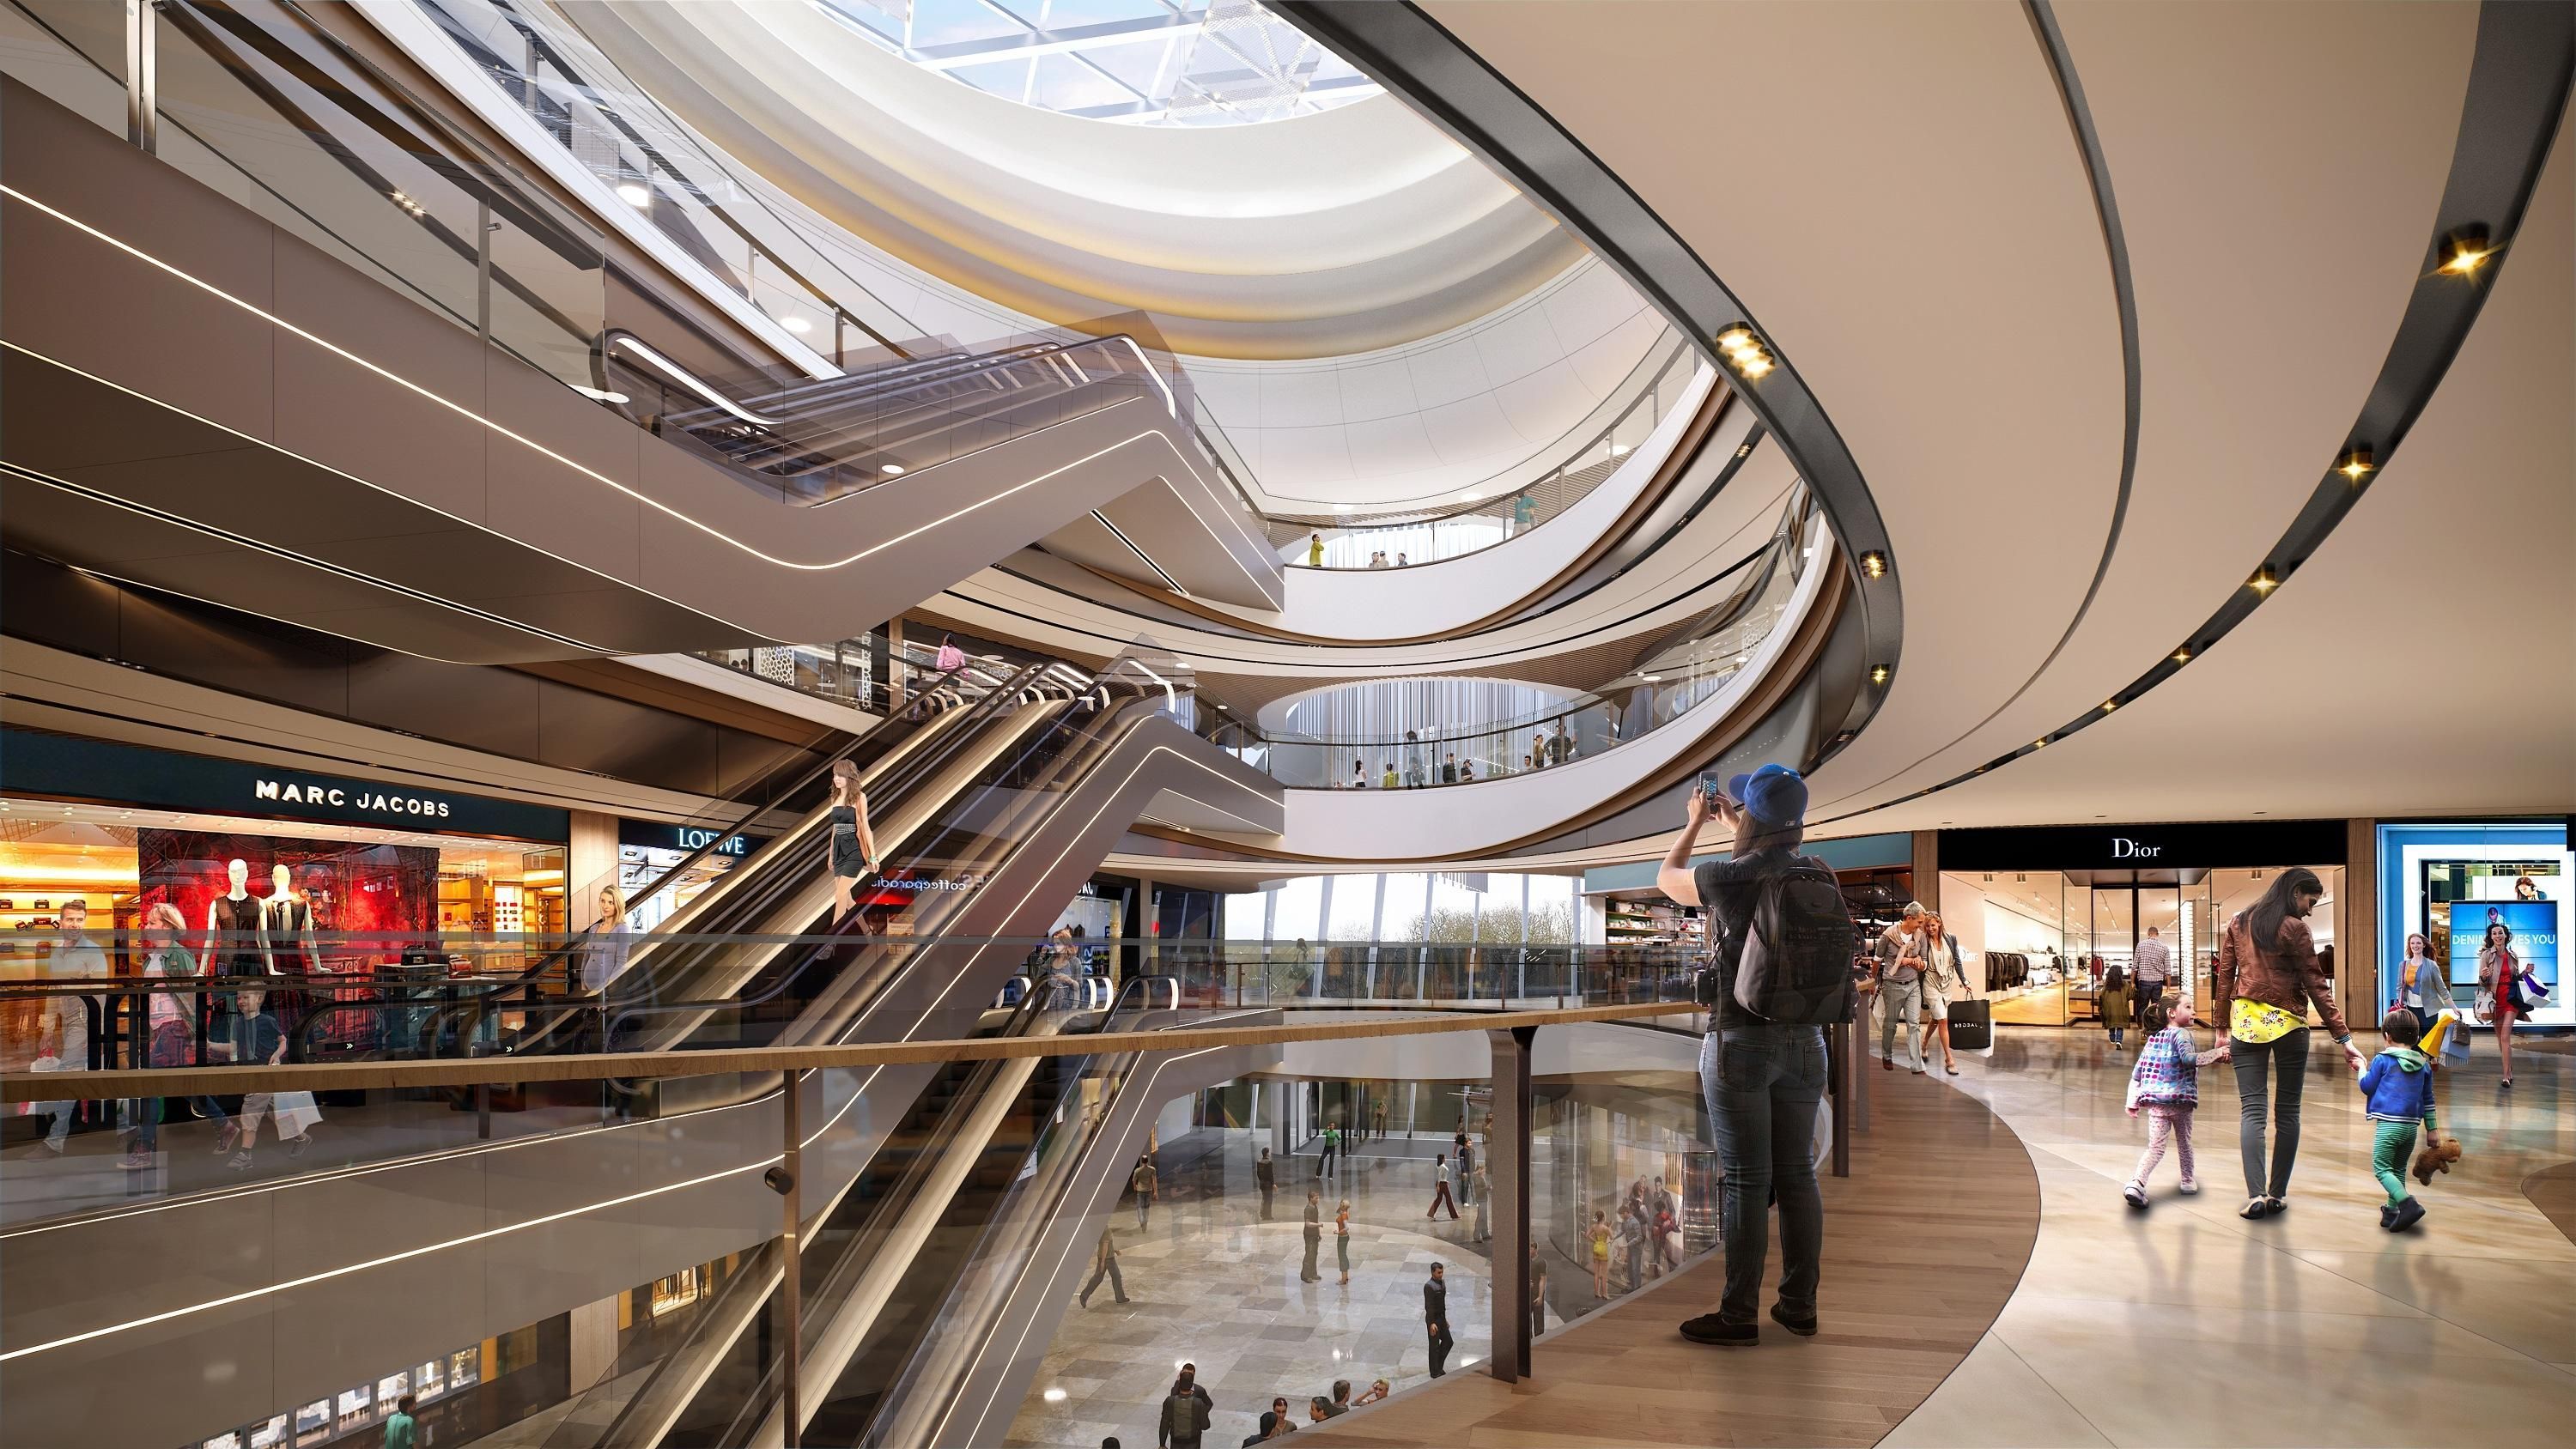 Pin By Kimi On K Mall Shopping Mall Design Mall Design Outdoor